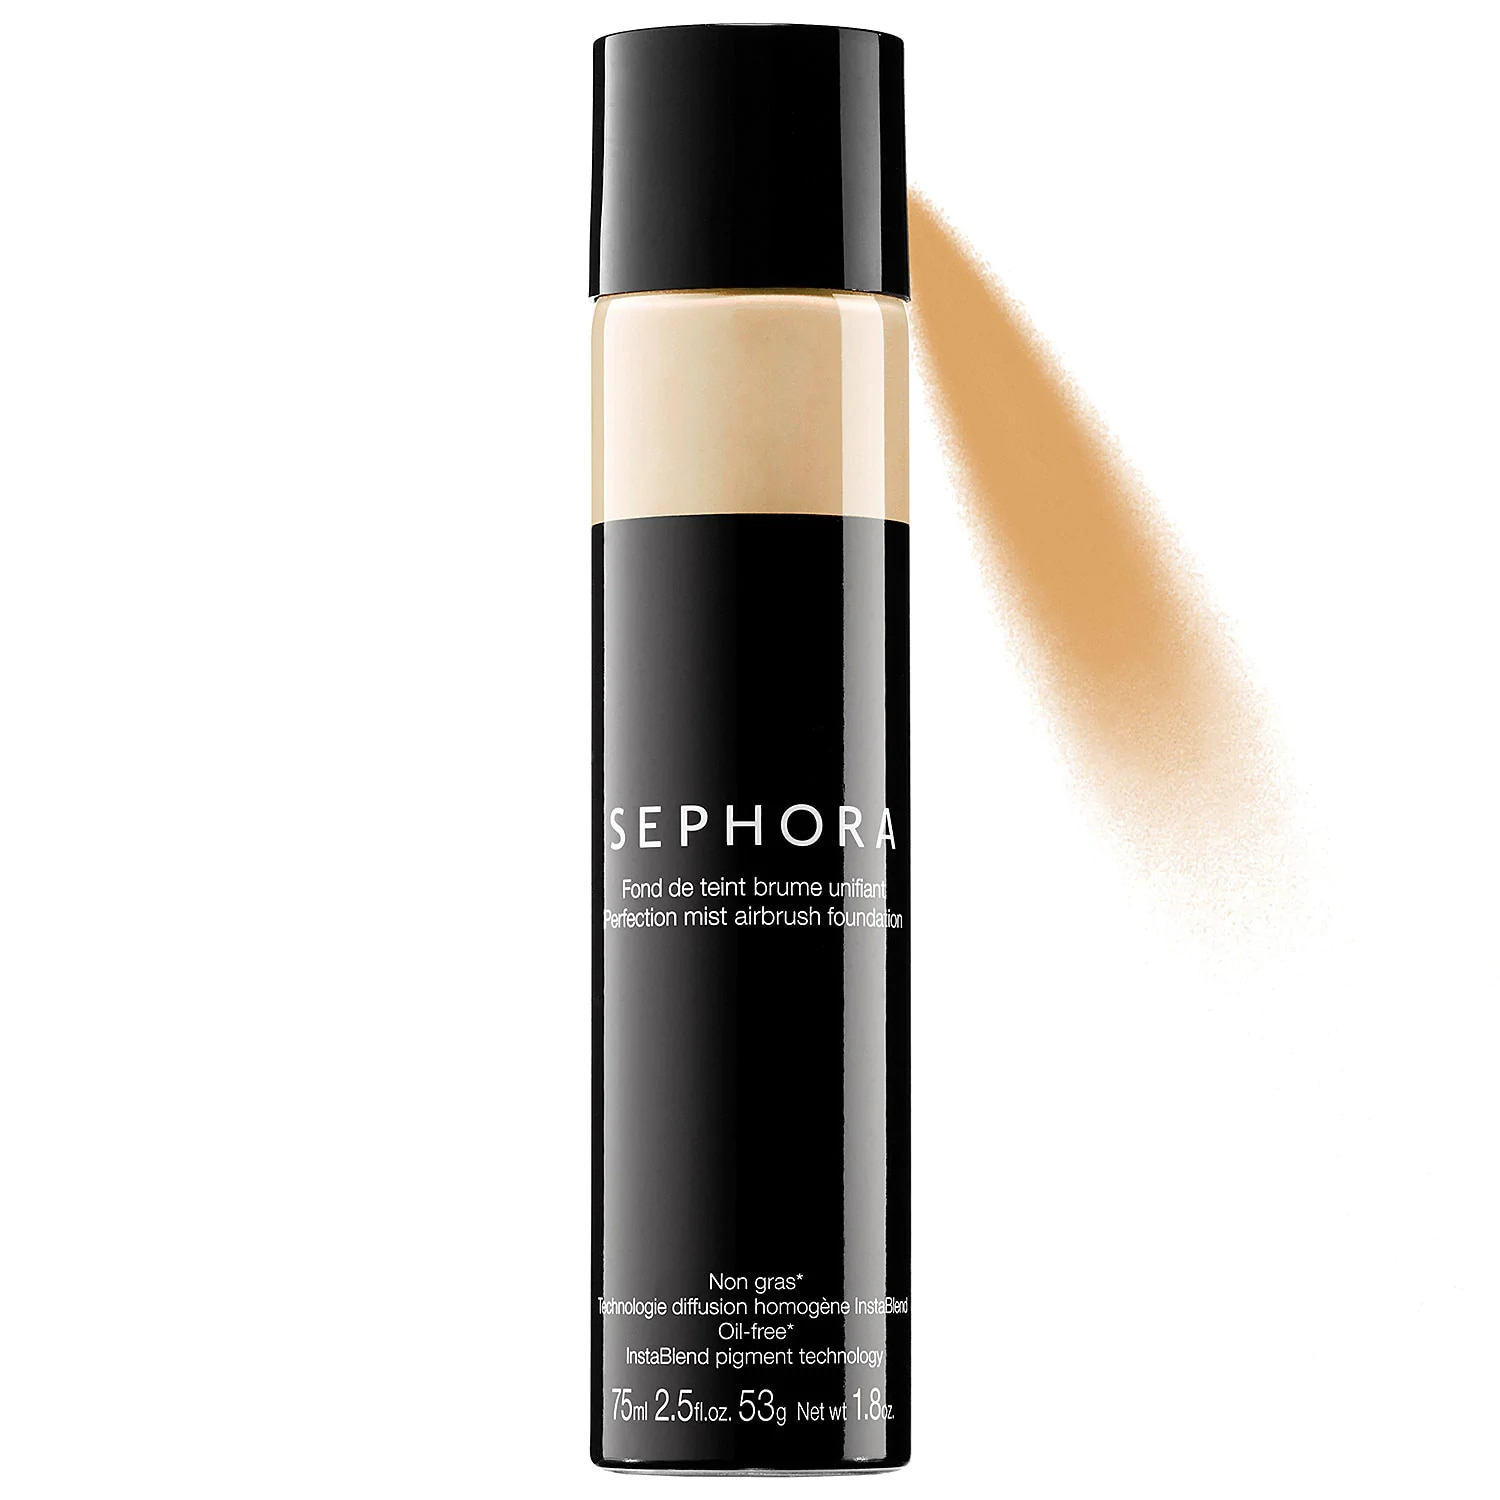 PERFECTION MIST AIRBRUSH FOUNDATION